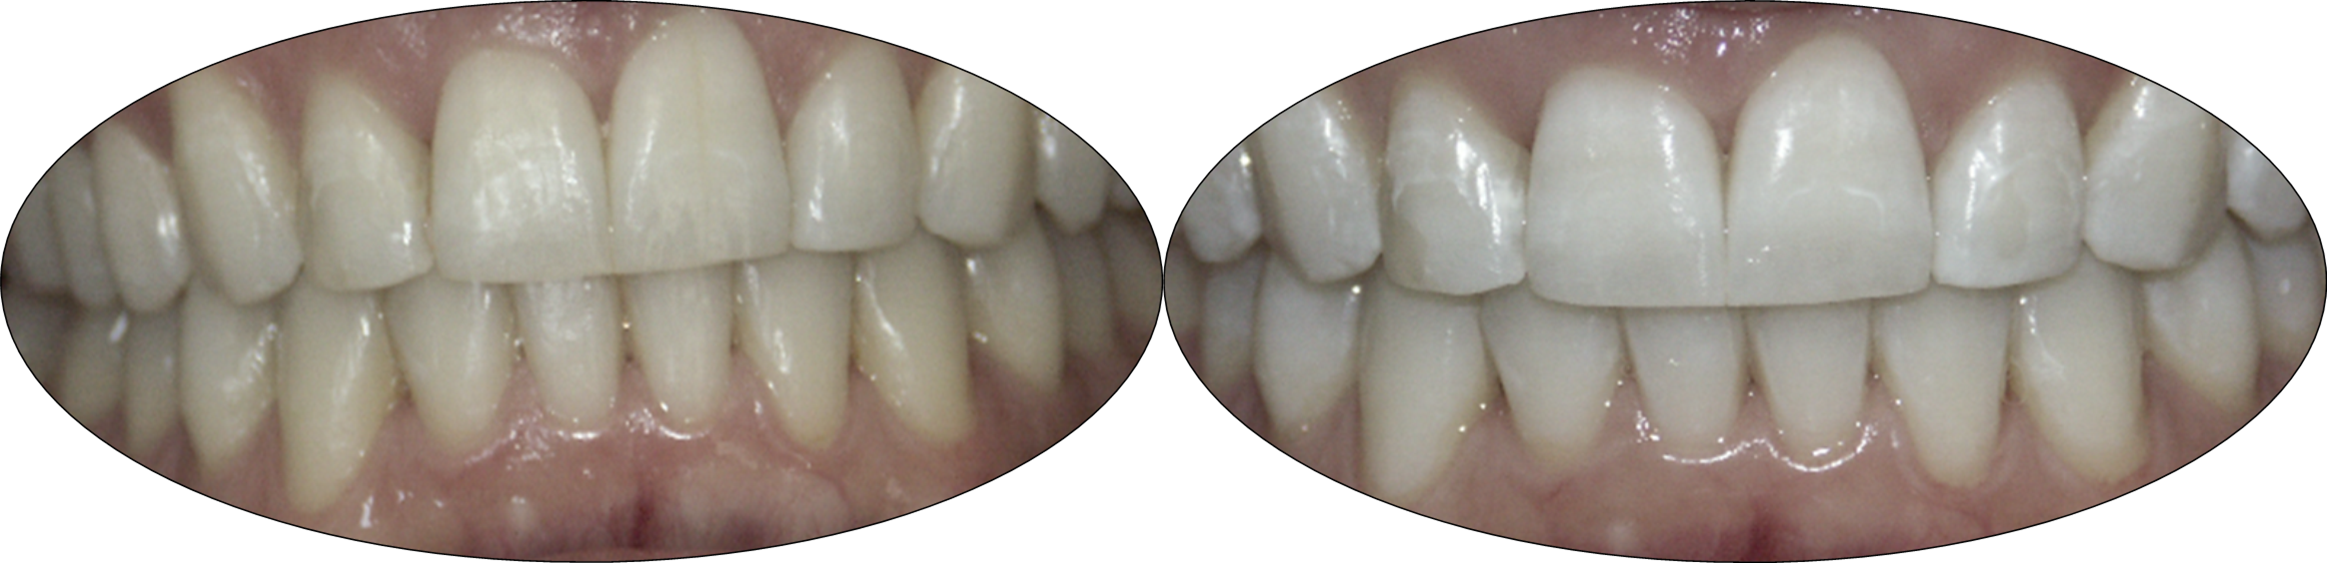 Before and after images of Zoom teeth whitening patient